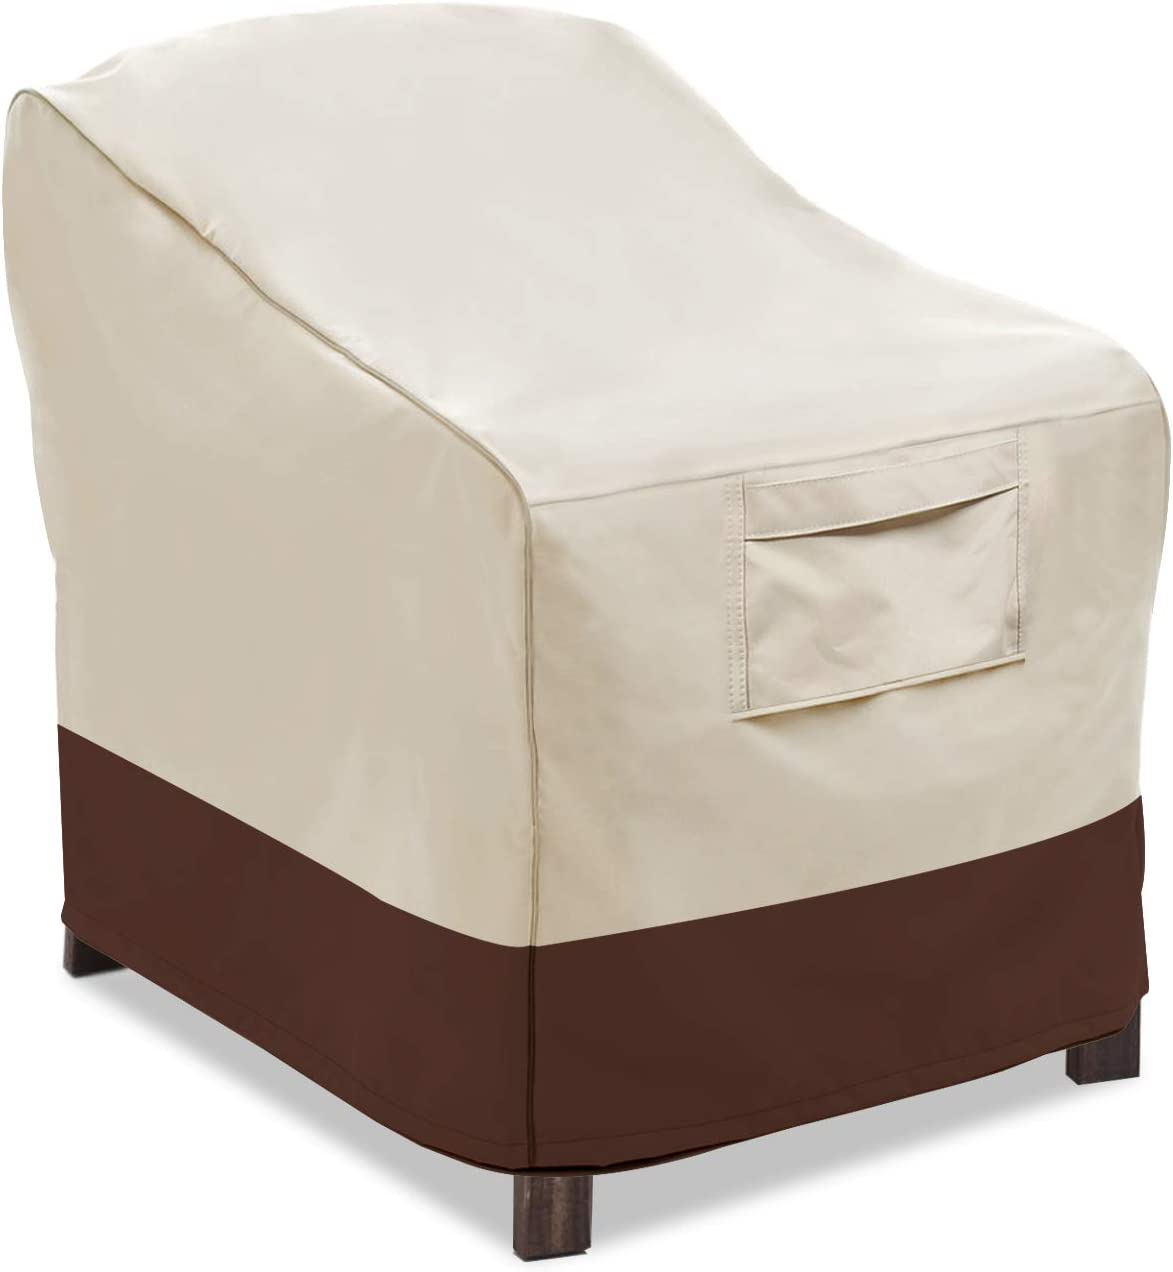 Vailge Patio Chair Covers, Lounge Deep Seat Cover, Heavy Duty and Waterproof Outdoor Lawn Patio Furniture Covers, Medium Beige & Brown : Garden & Outdoor